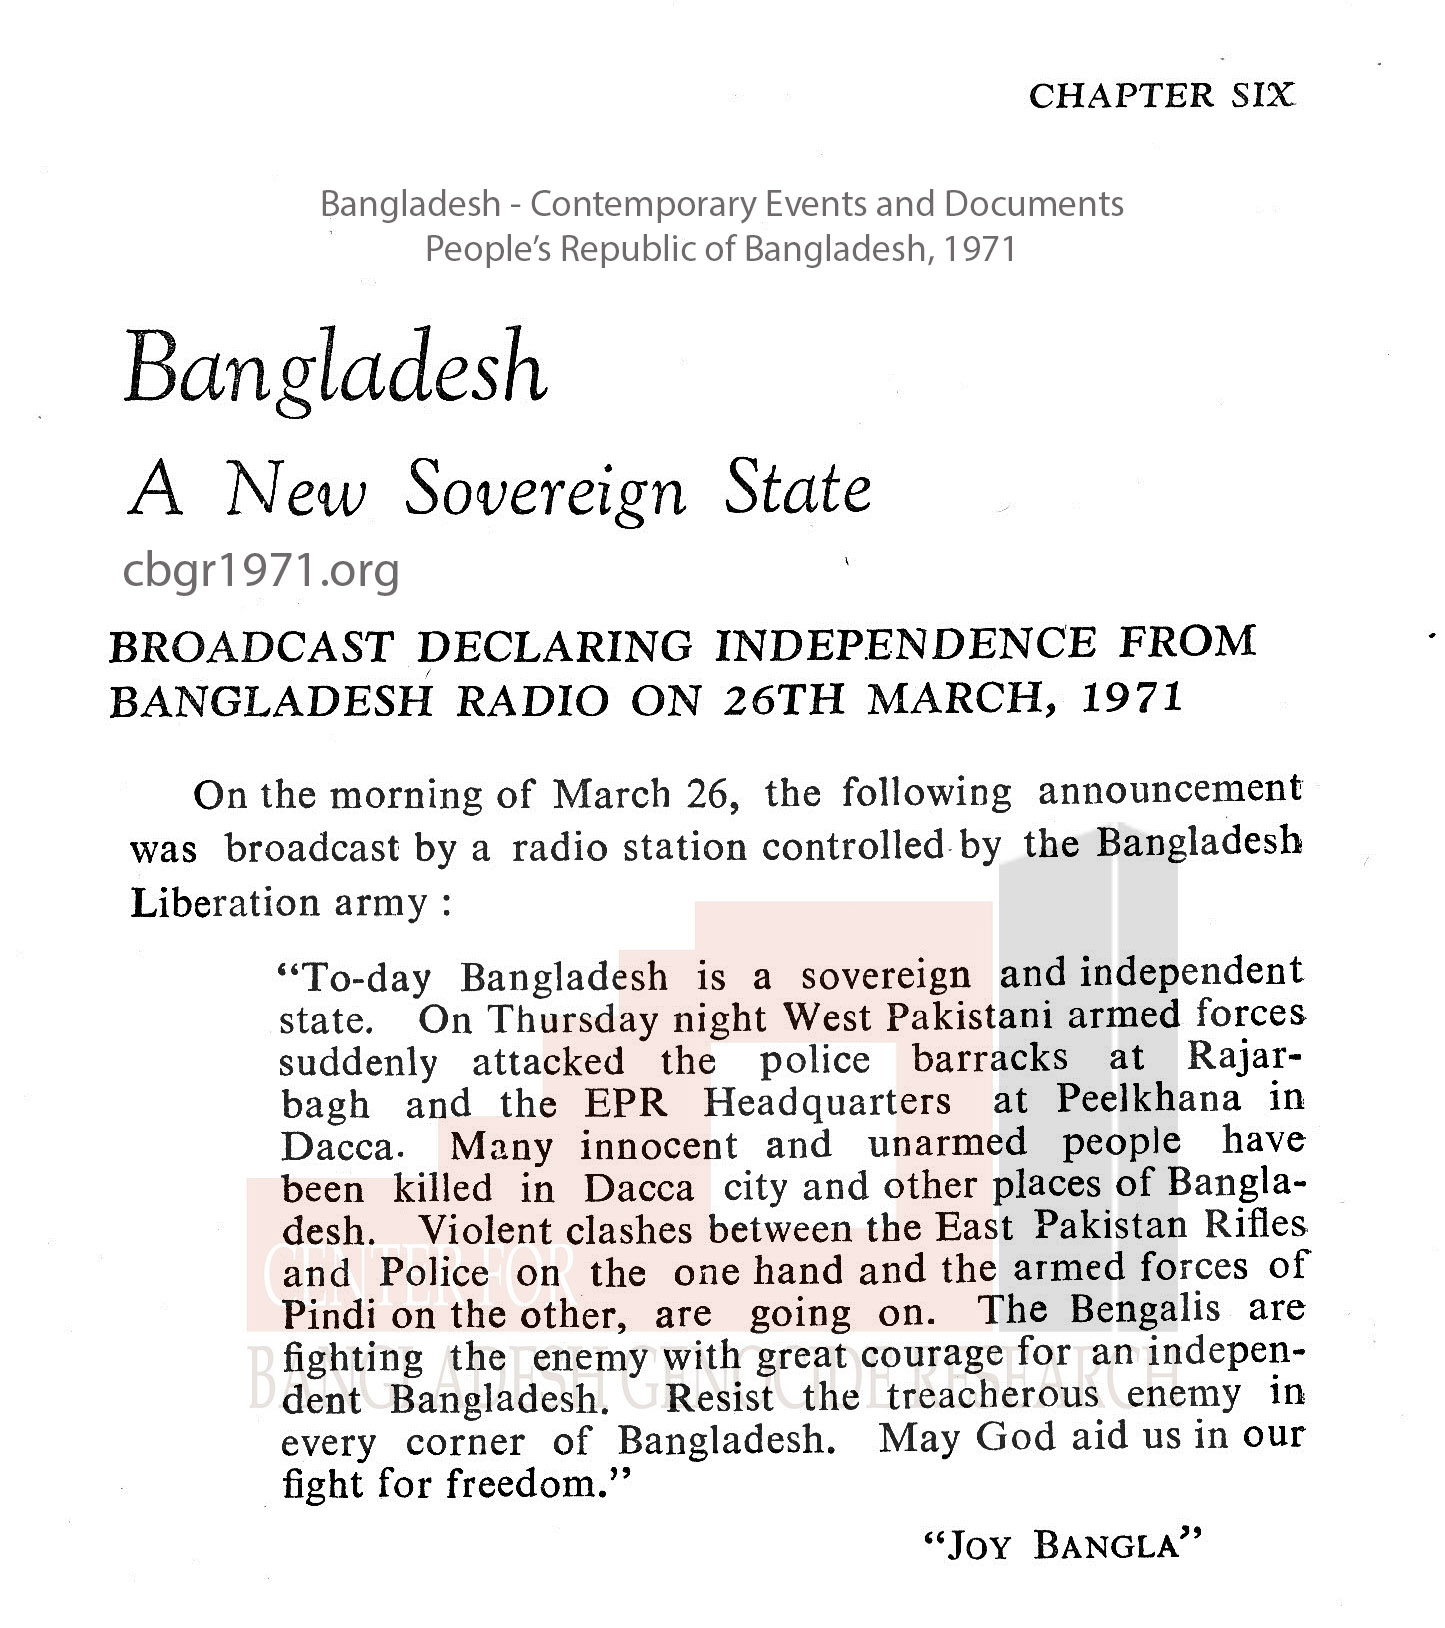 Bangladesh Contemporary Events and Documents